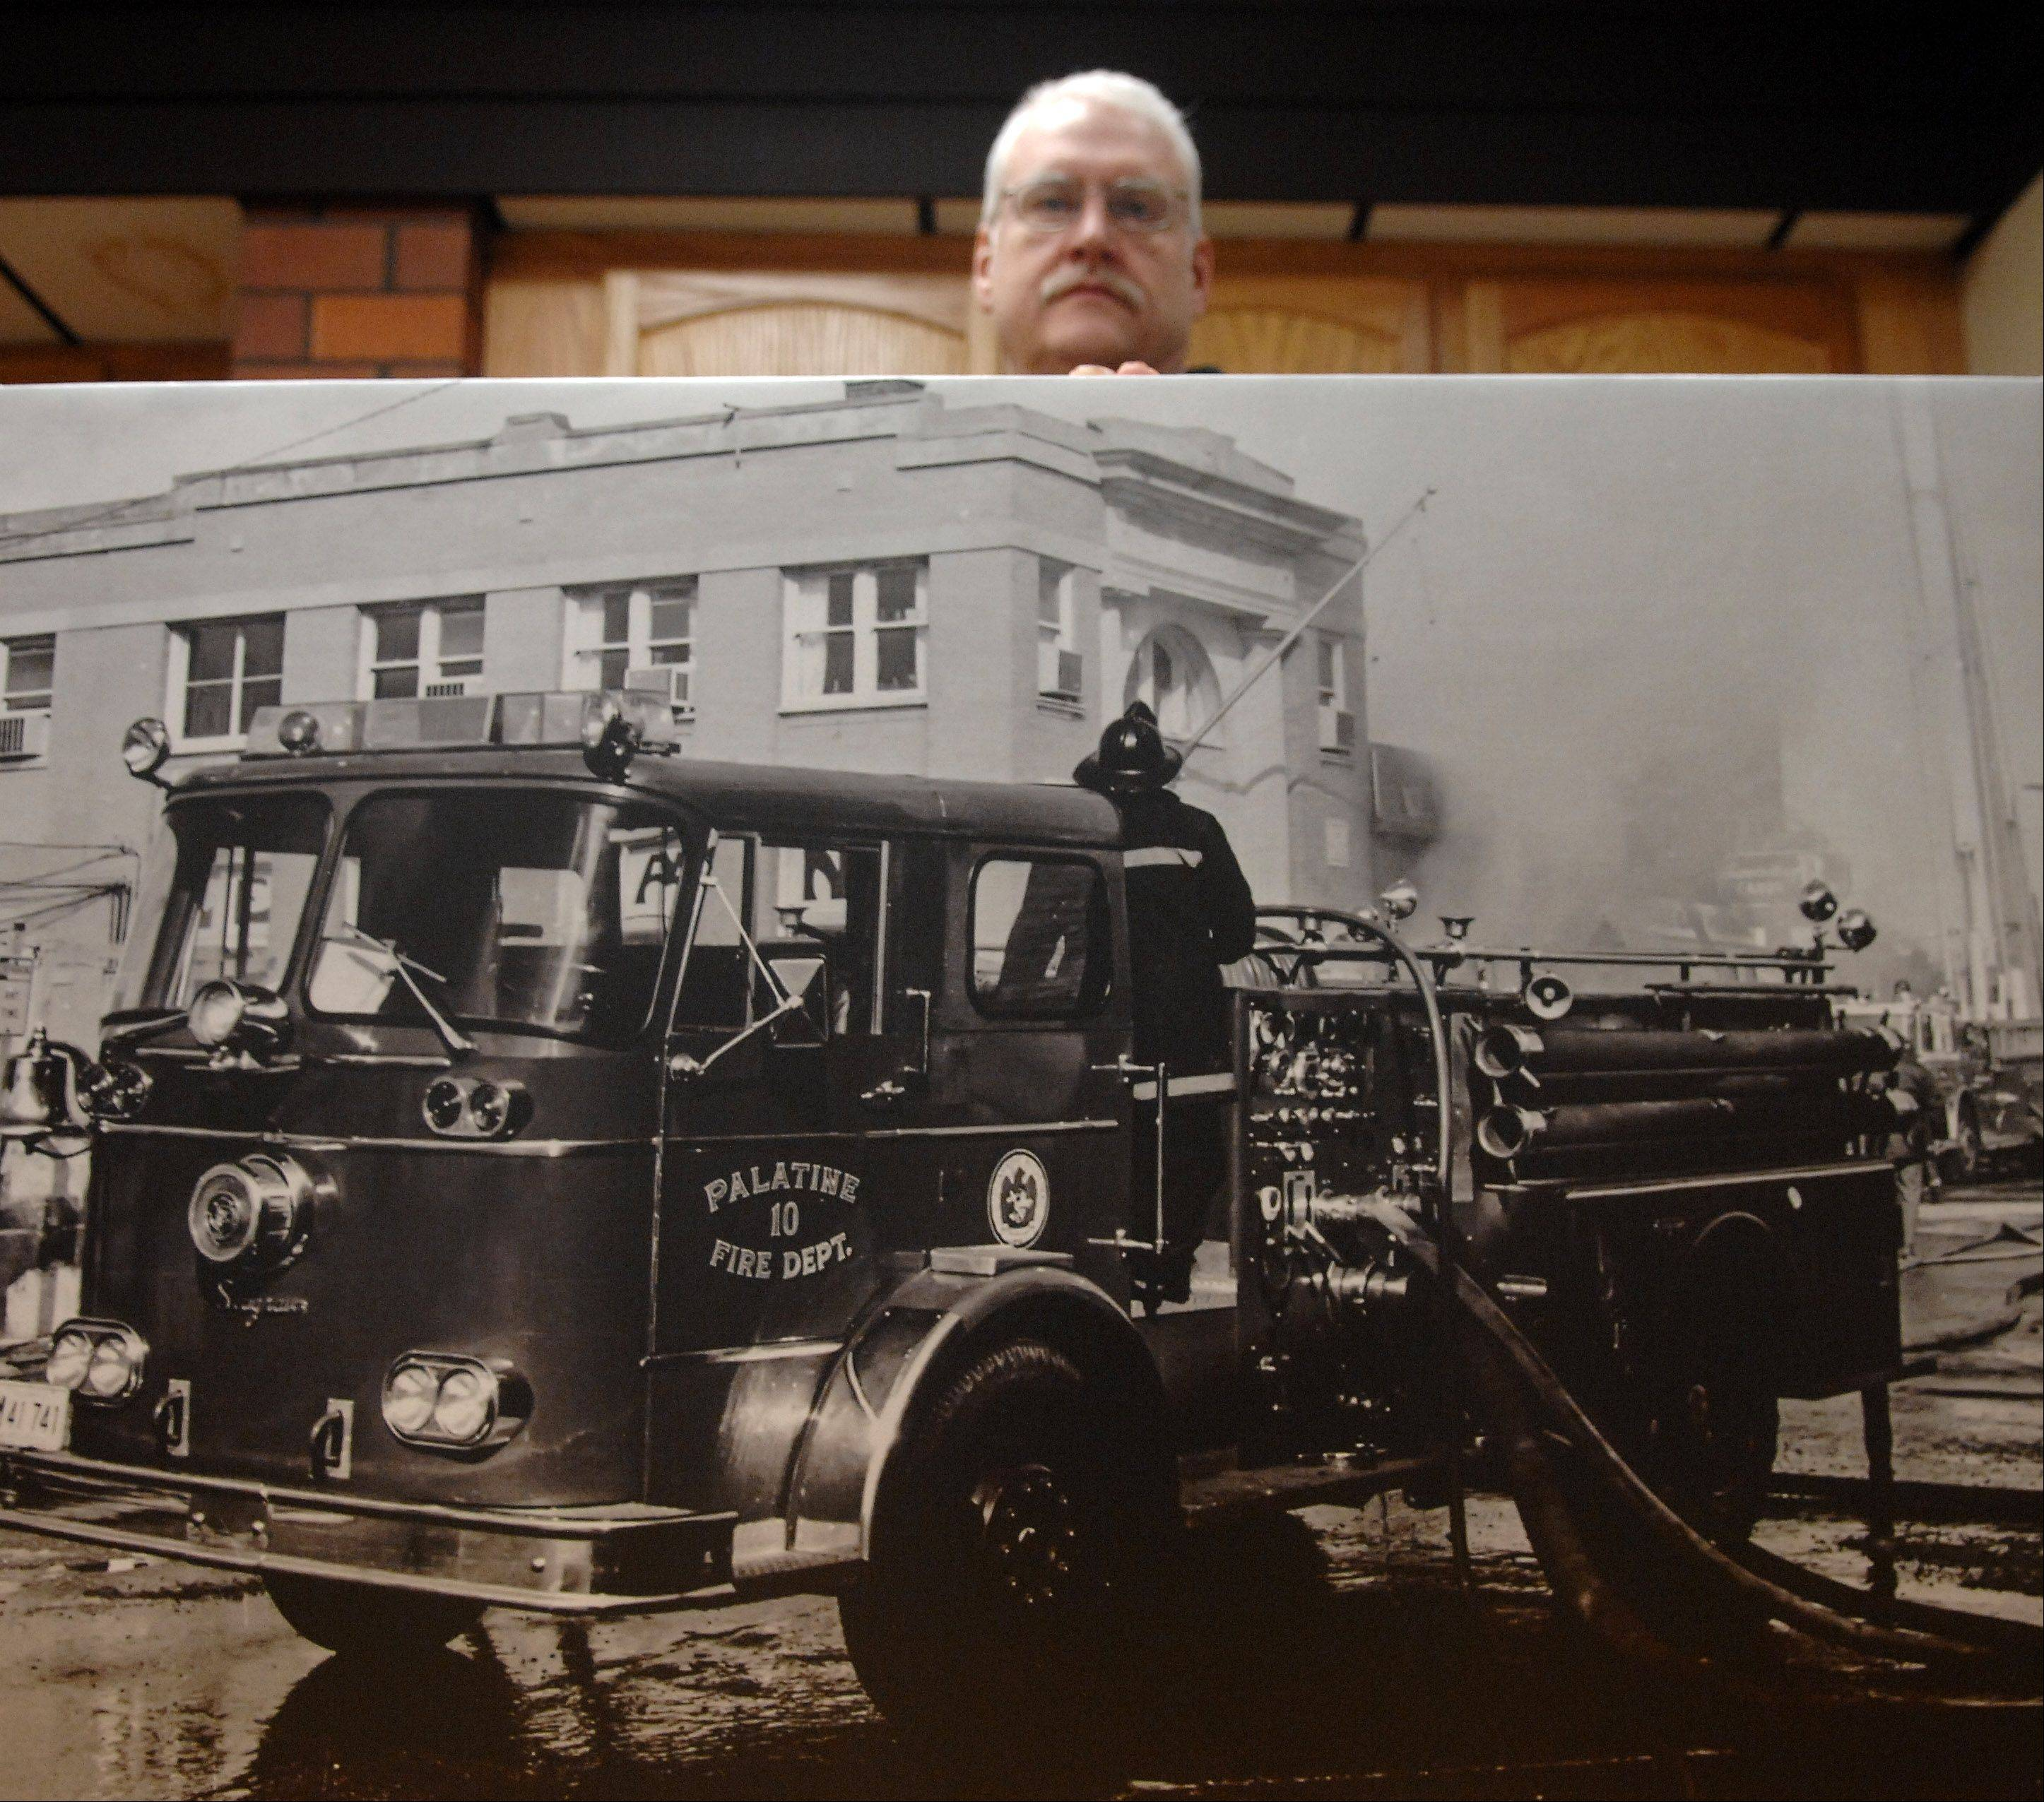 Rick West/rwest@dailyherald.com Elgin firefighter John Tobin has written a book about the Ben Franklin Variety Store fire that killed three Palatine volunteer firefighters 40 years ago.